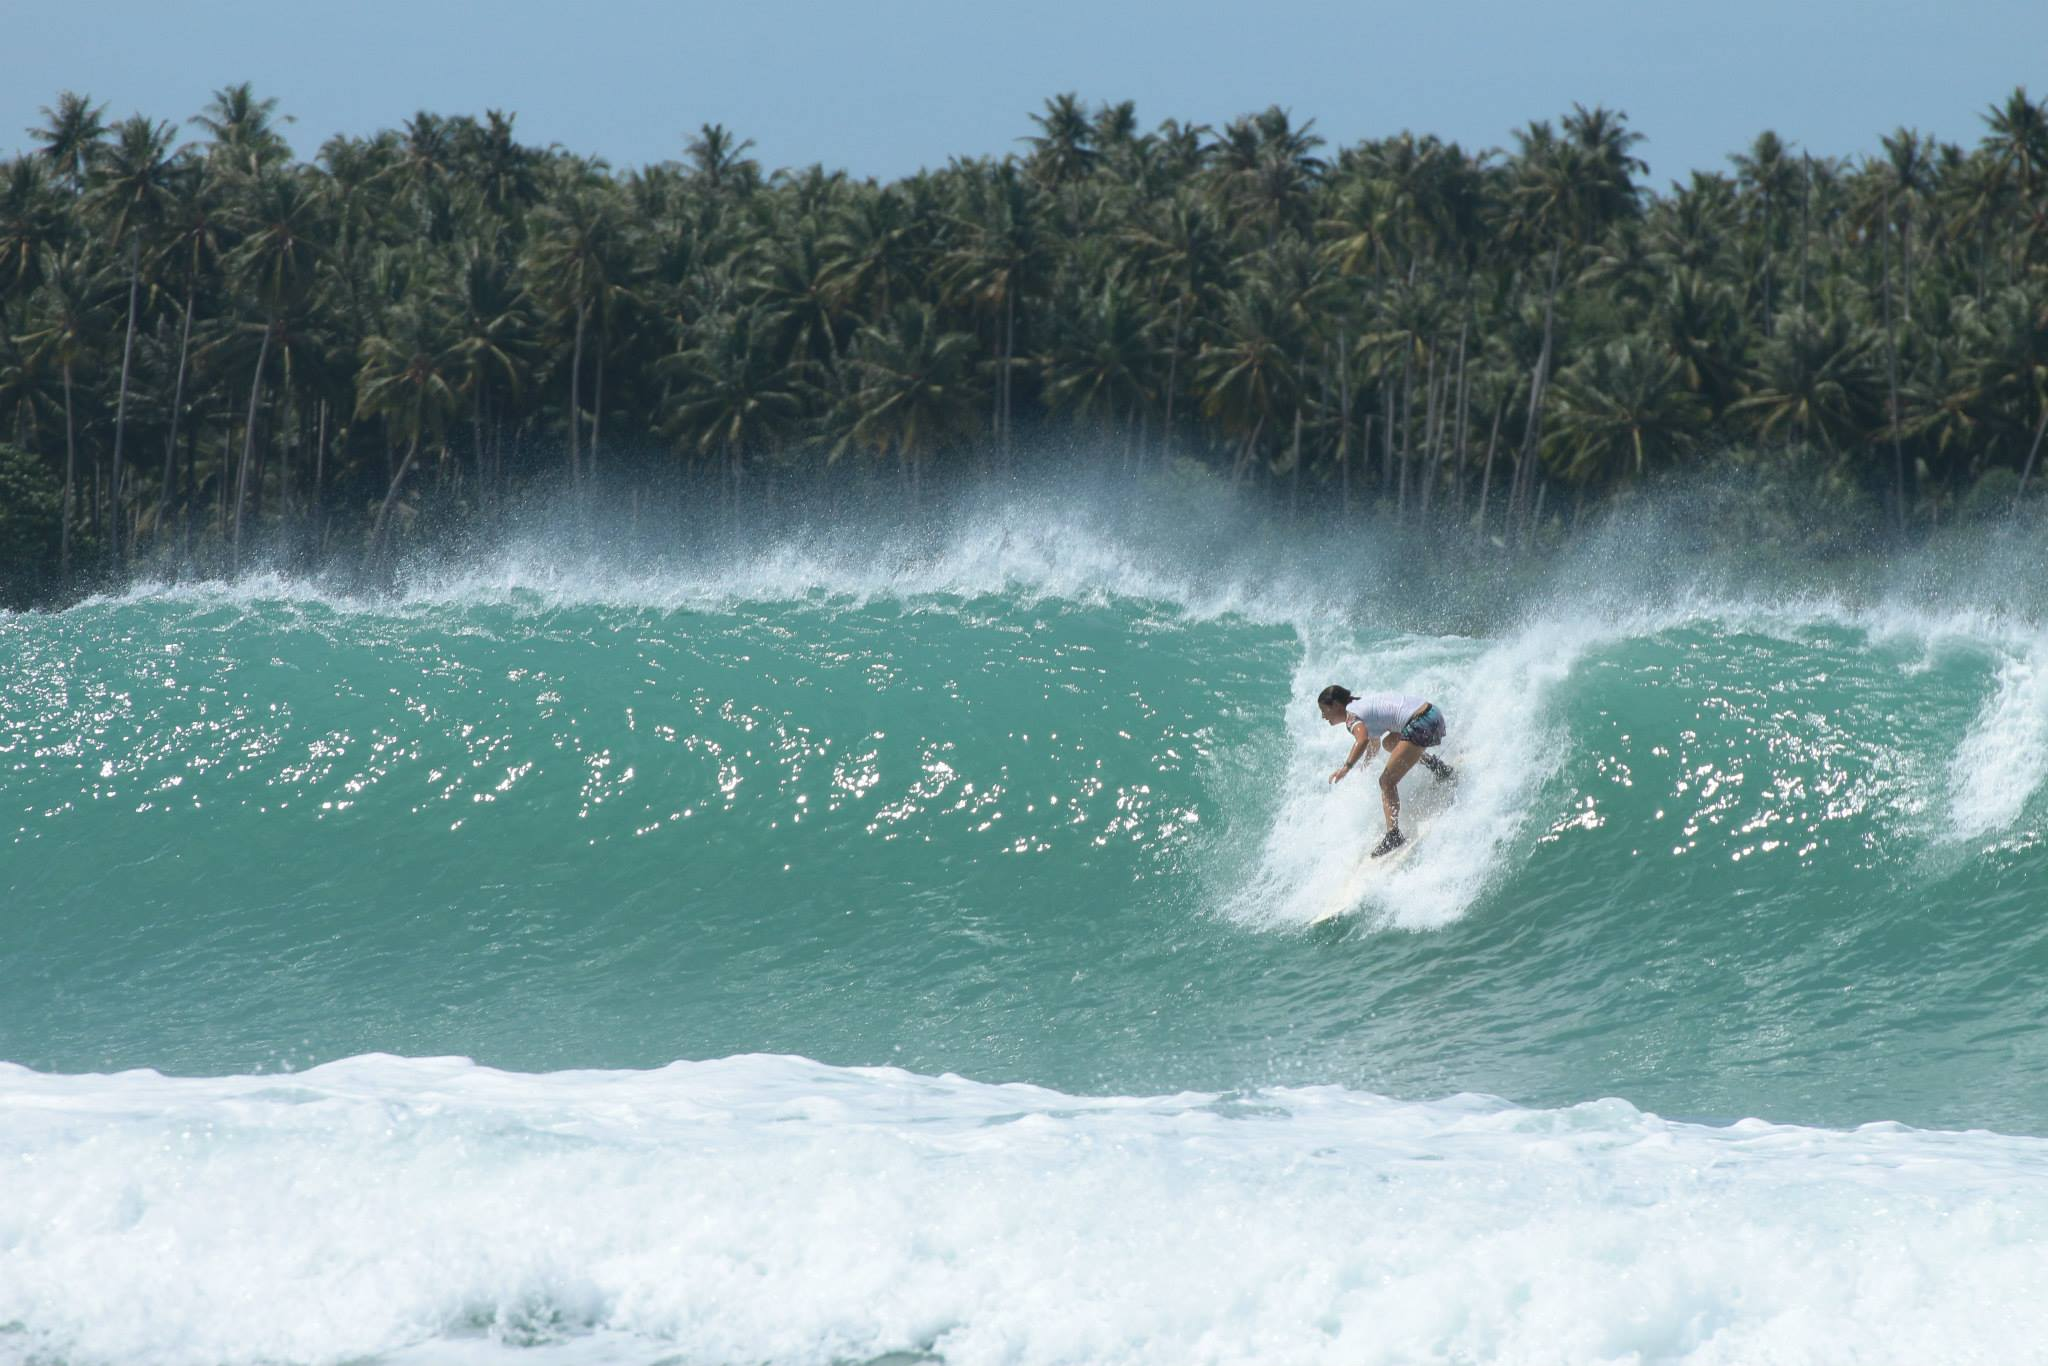 Late take off, Tube nias, Indonésie, surfeuse, surf fille blog